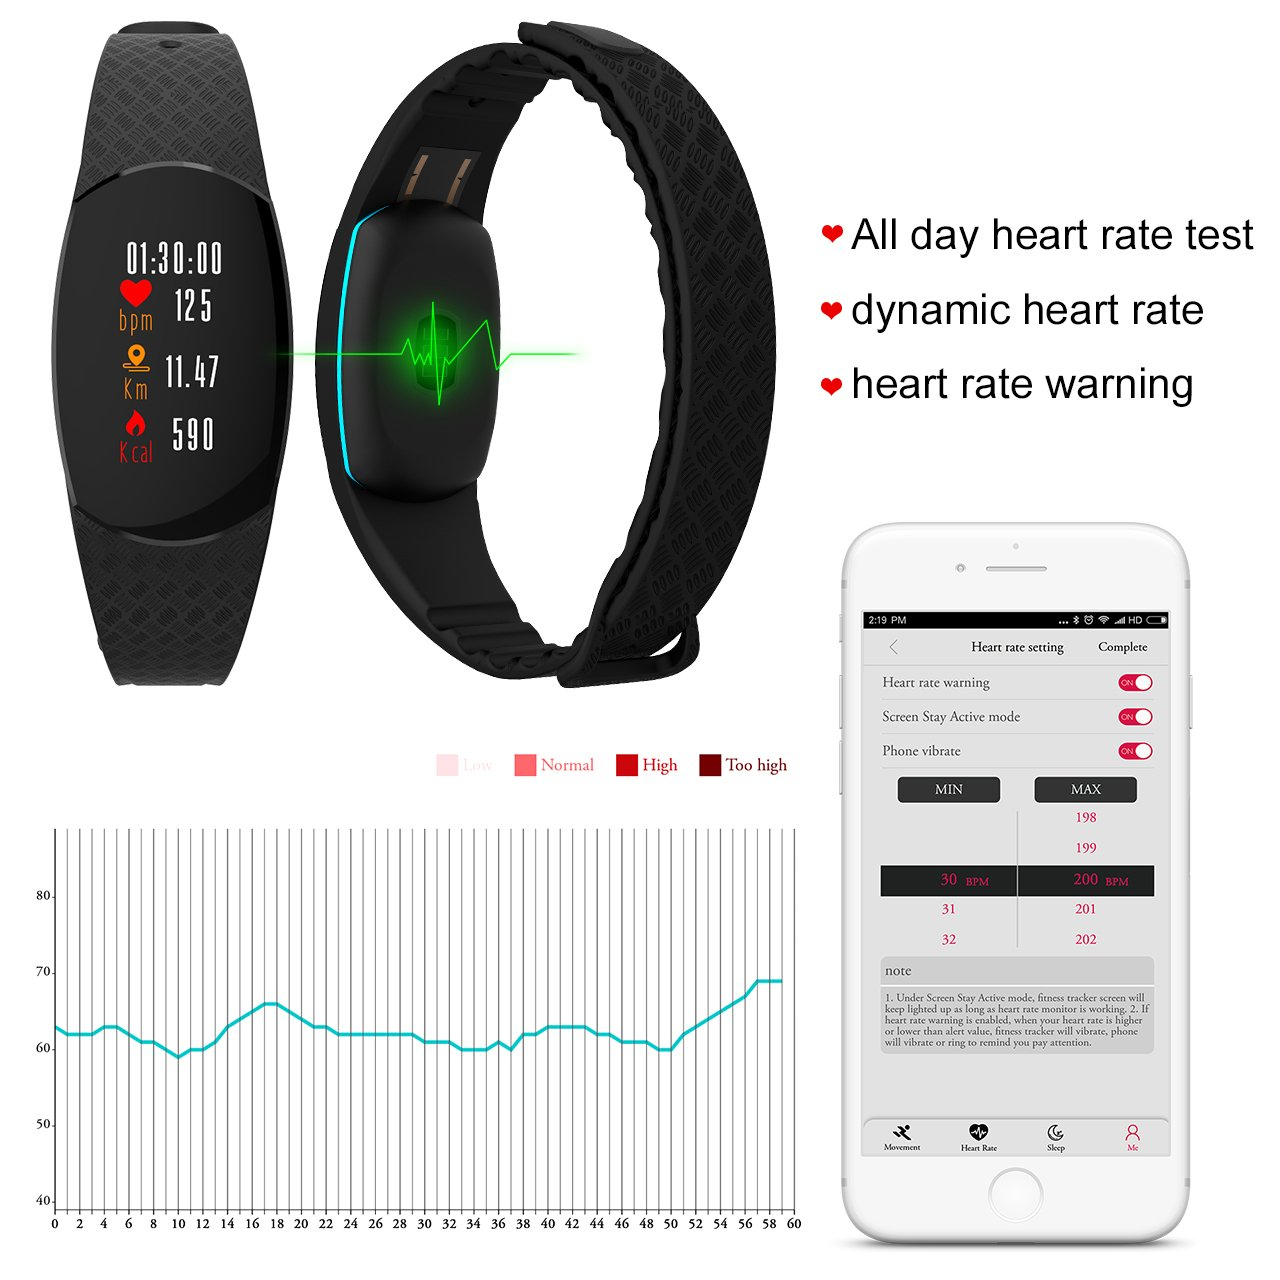 COSVII Fitness Tracker Color Screen with Heart Rate Monitor, Pedometer, Blood Pressure Monitor,Sleep Monitor, Calorie Counter, Waterproof Android IOS Smart Watch for Women Men Kids (Black)